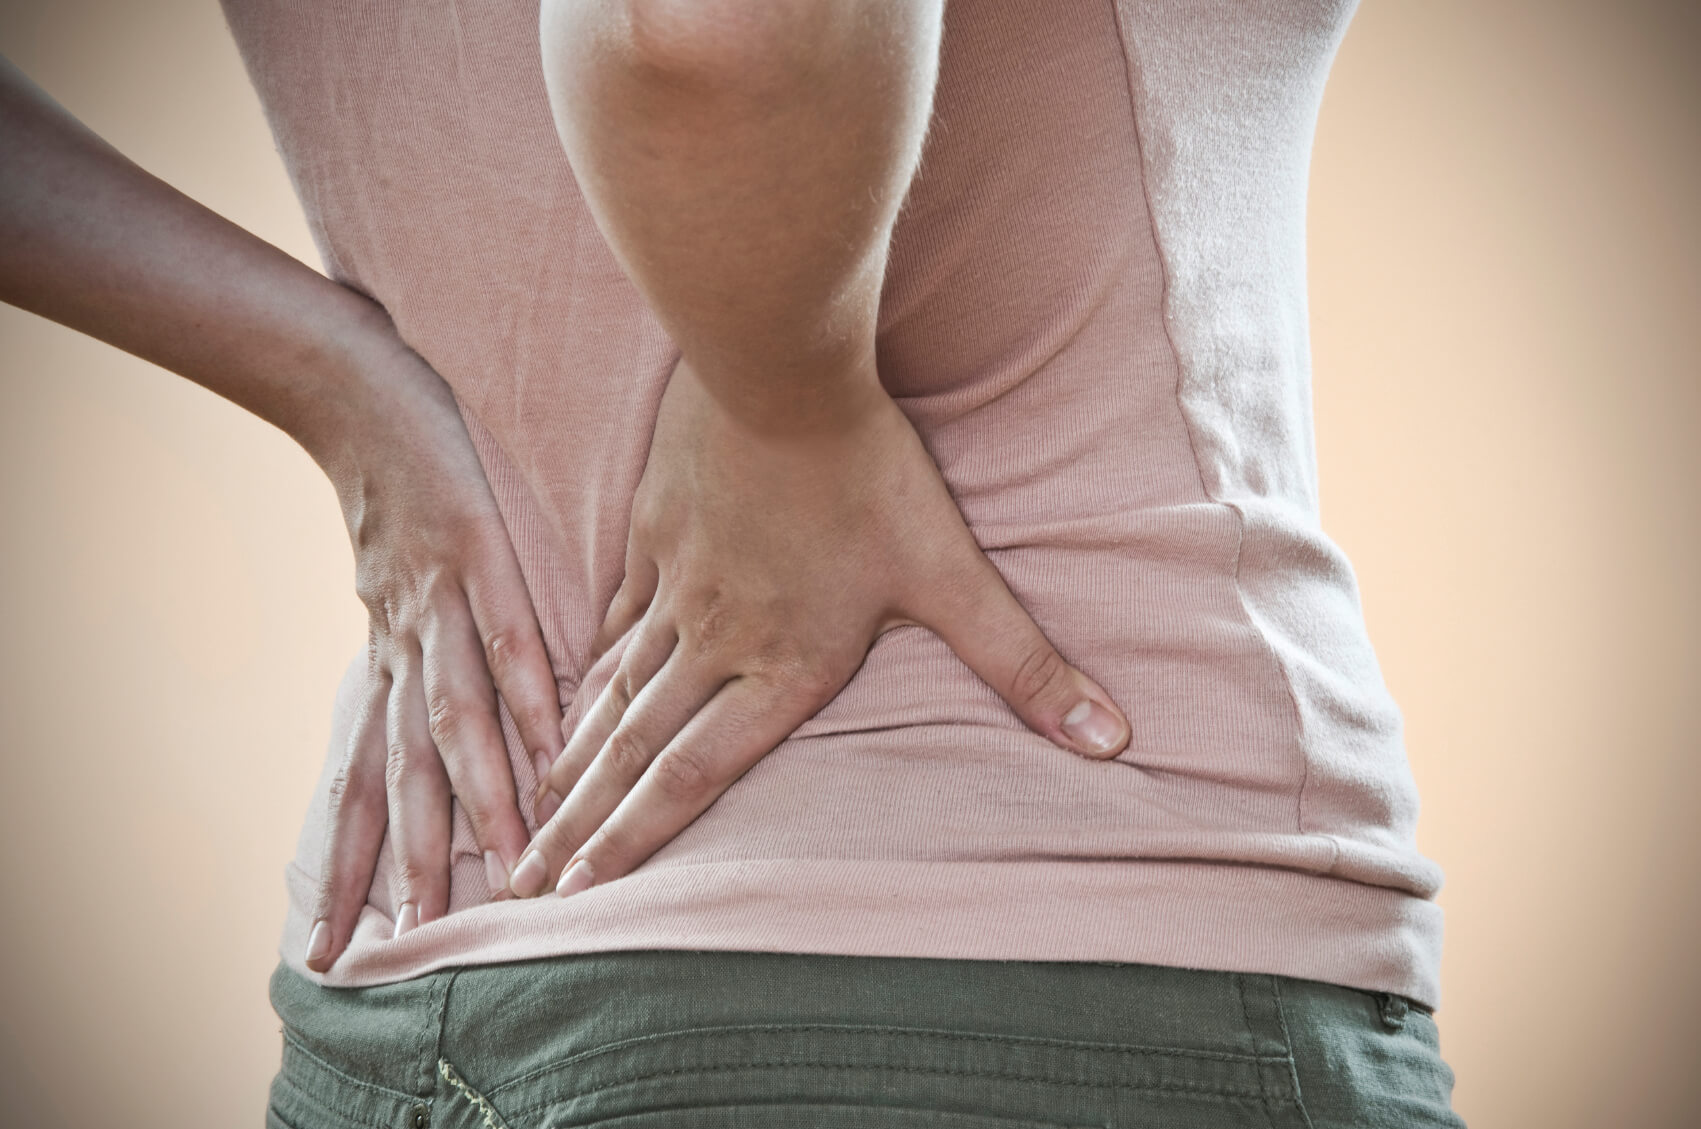 FREE PHYSIO – Lower Back Pain